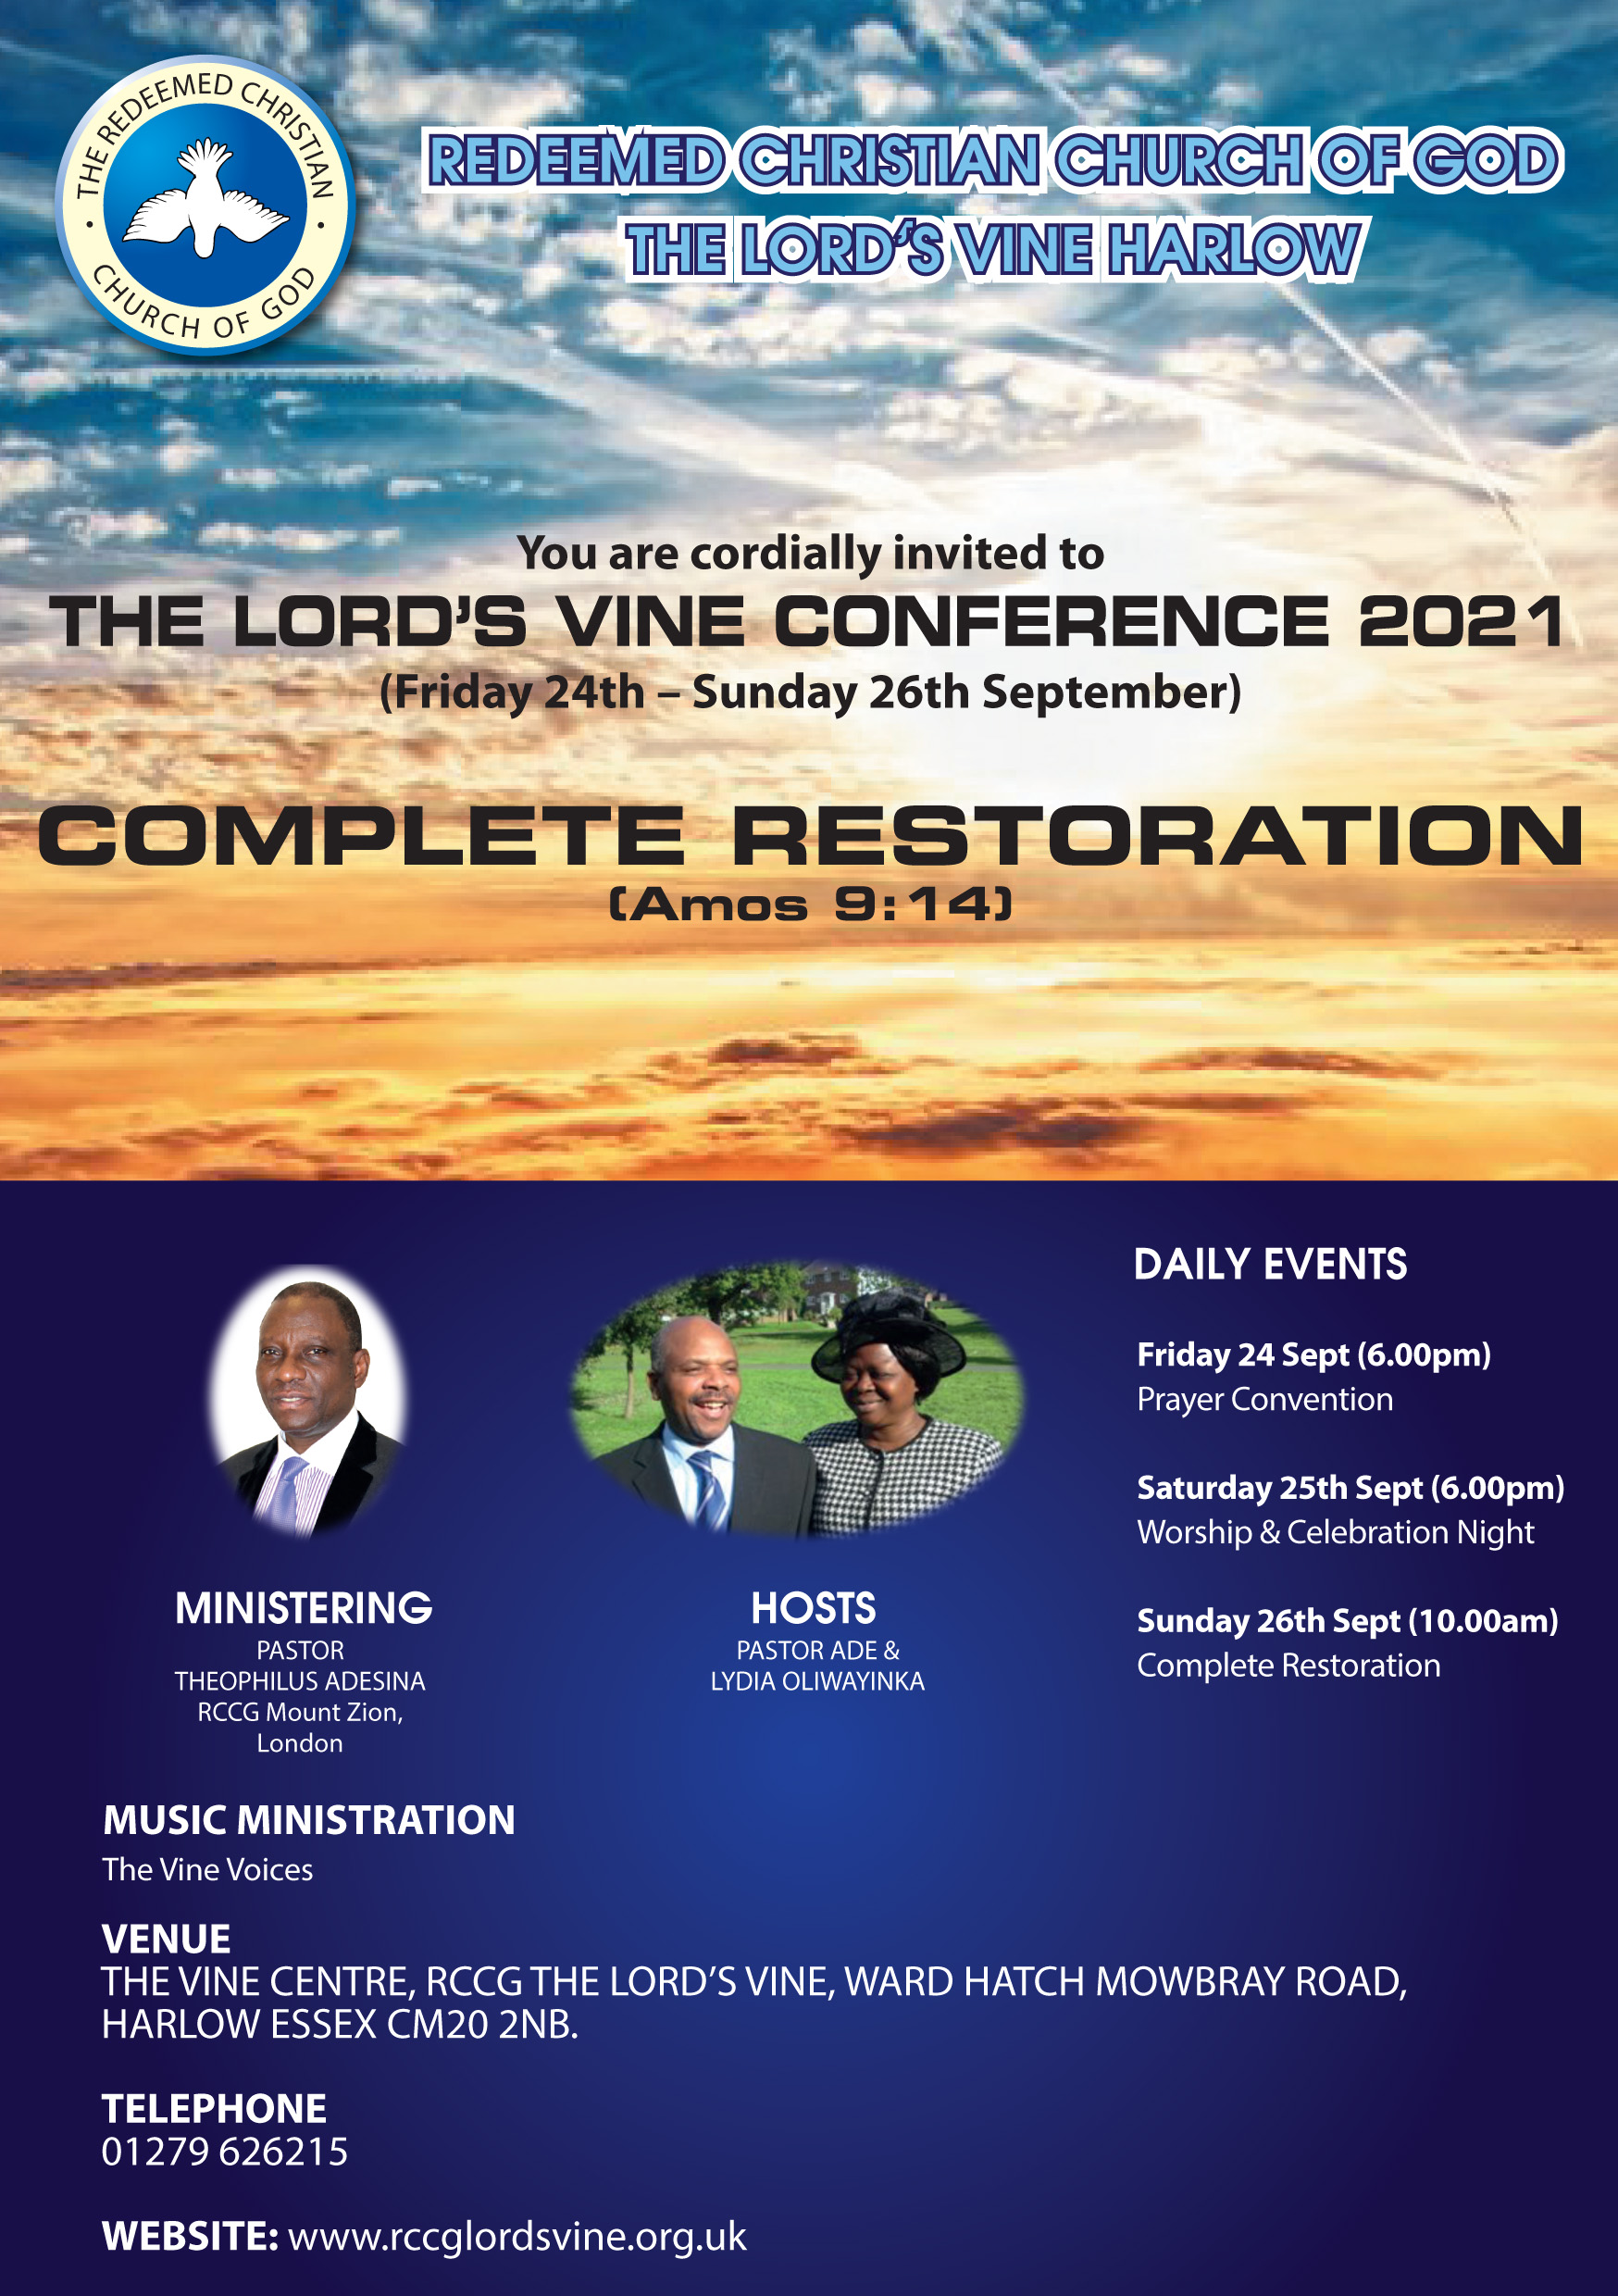 The Lord's Vine – RCCG Conference 2021